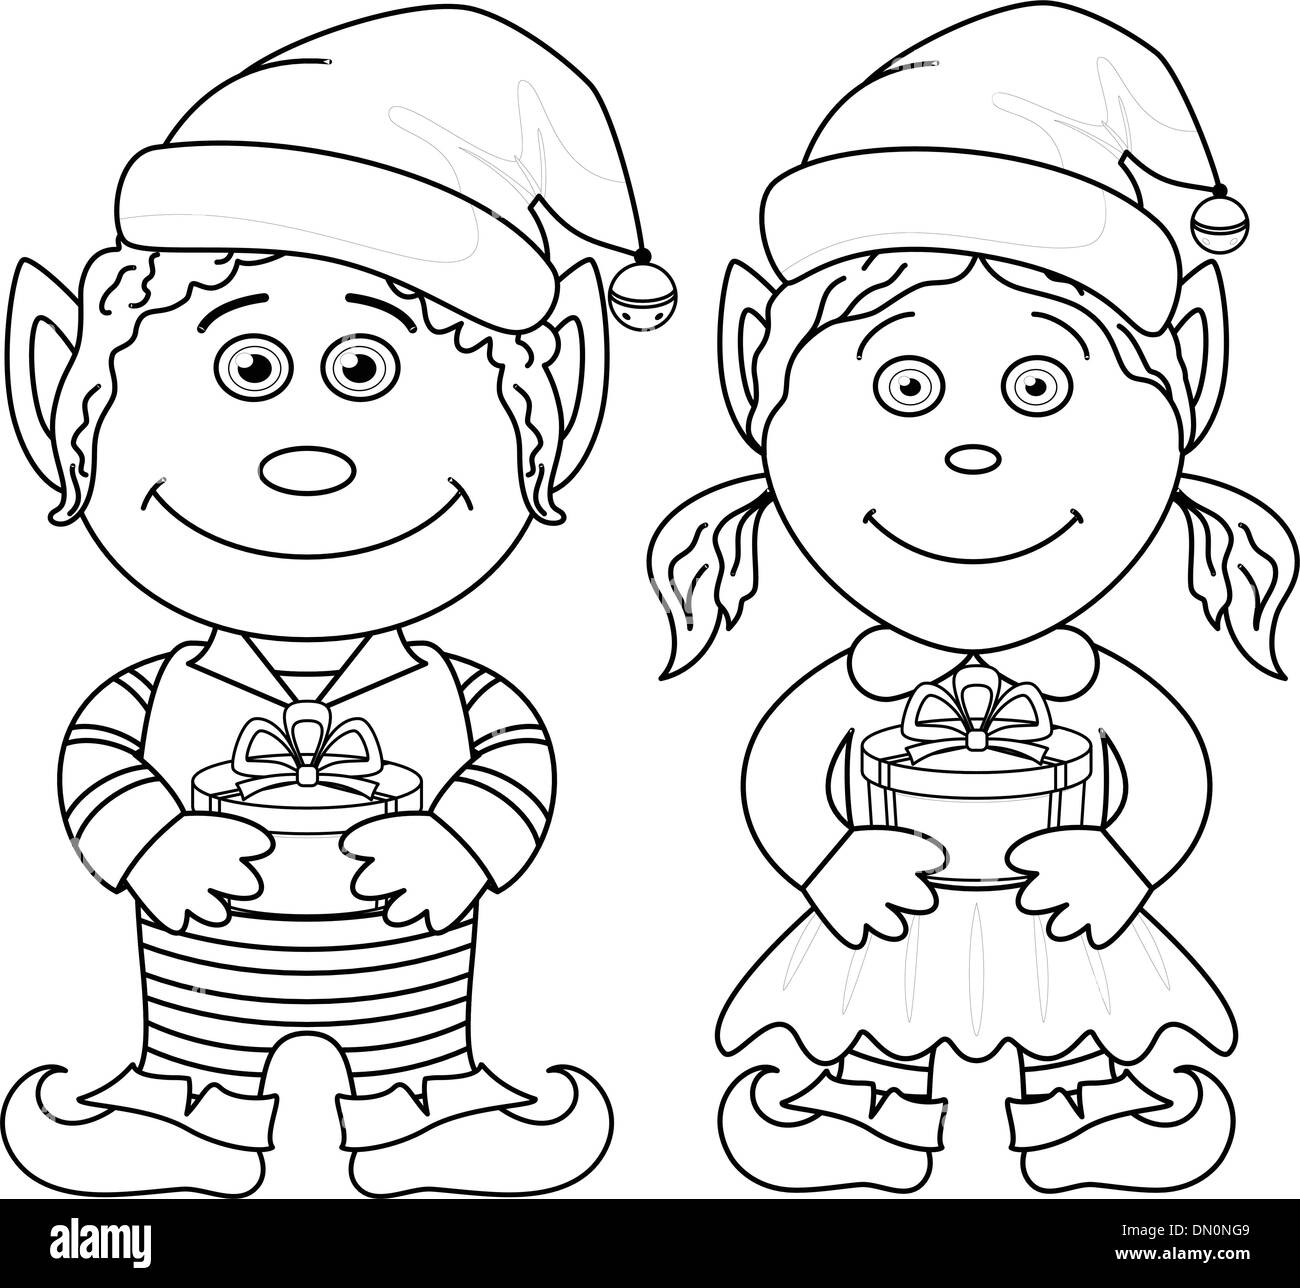 Elf Hat Drawing Black and White Stock Photos & Images - Alamy